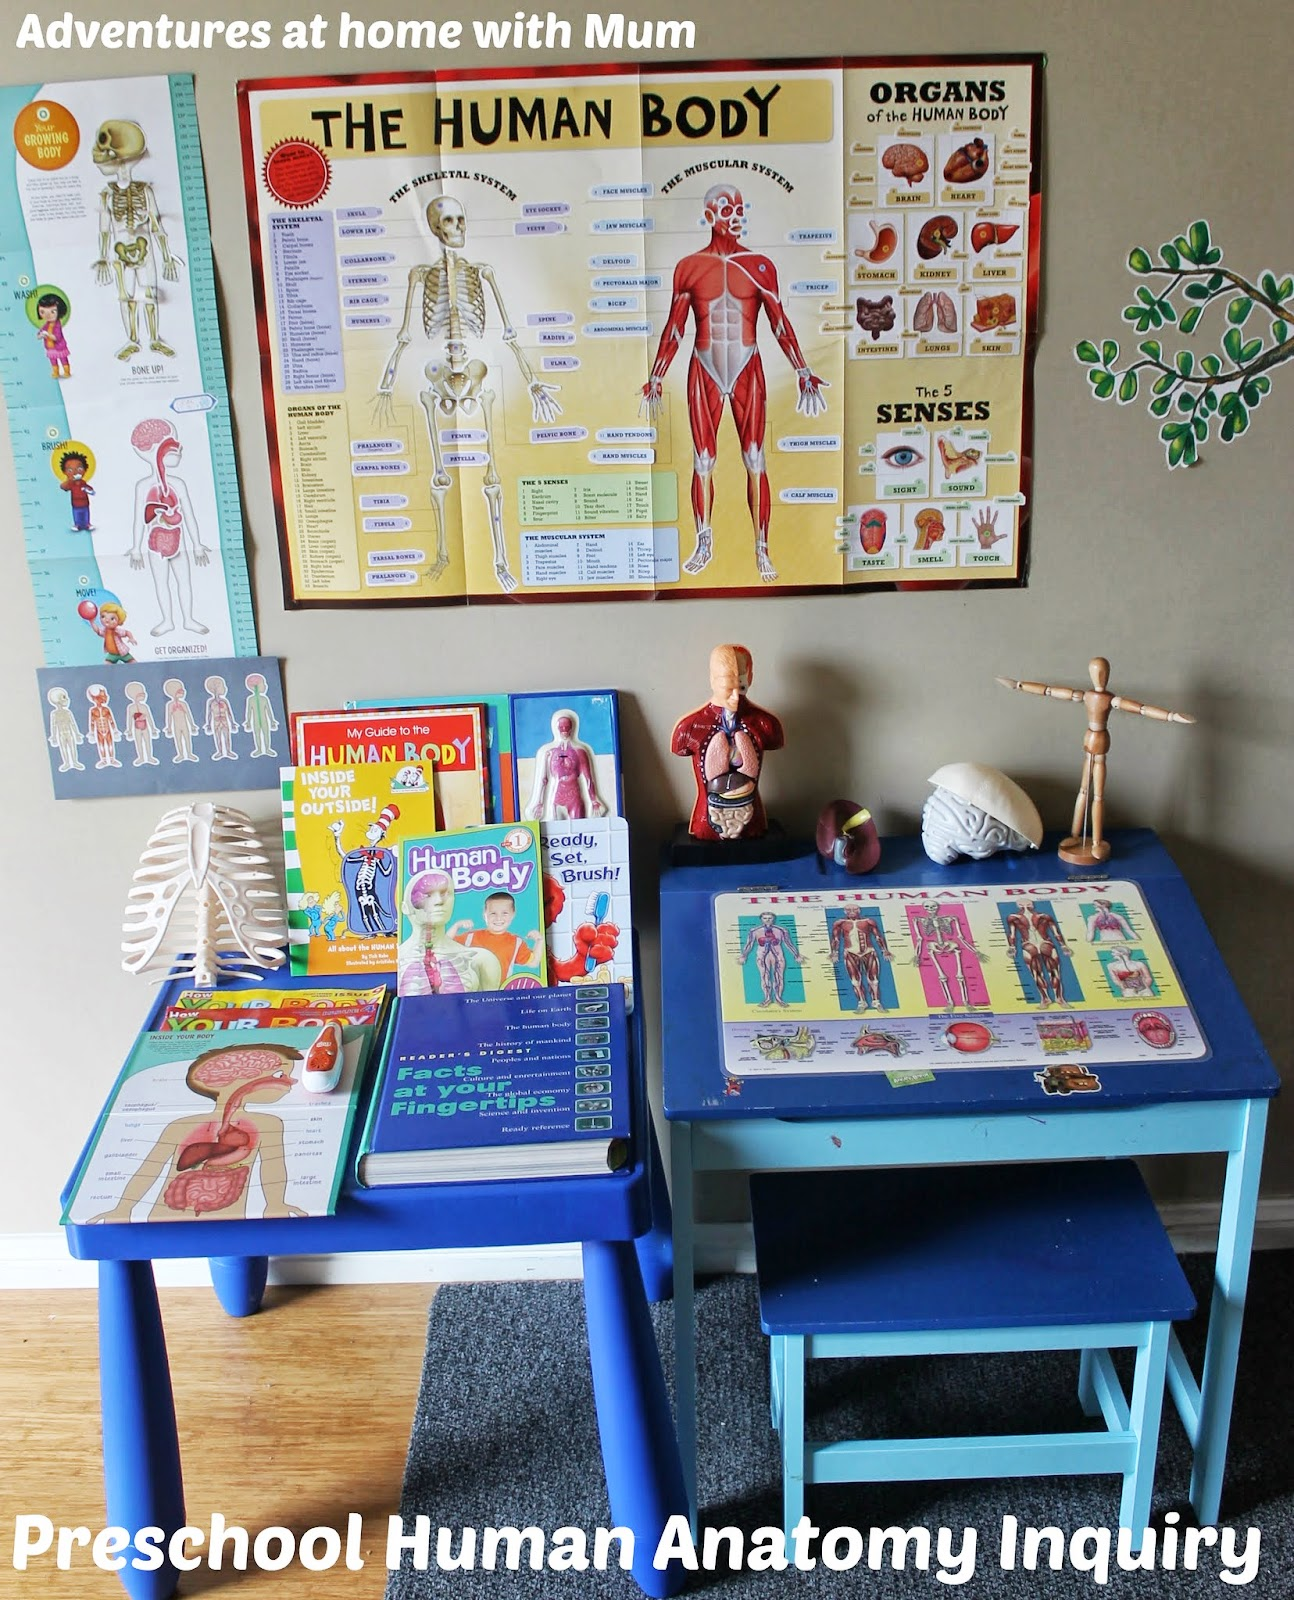 Adventures at home with Mum: Building a Body - Preschool Anatomy